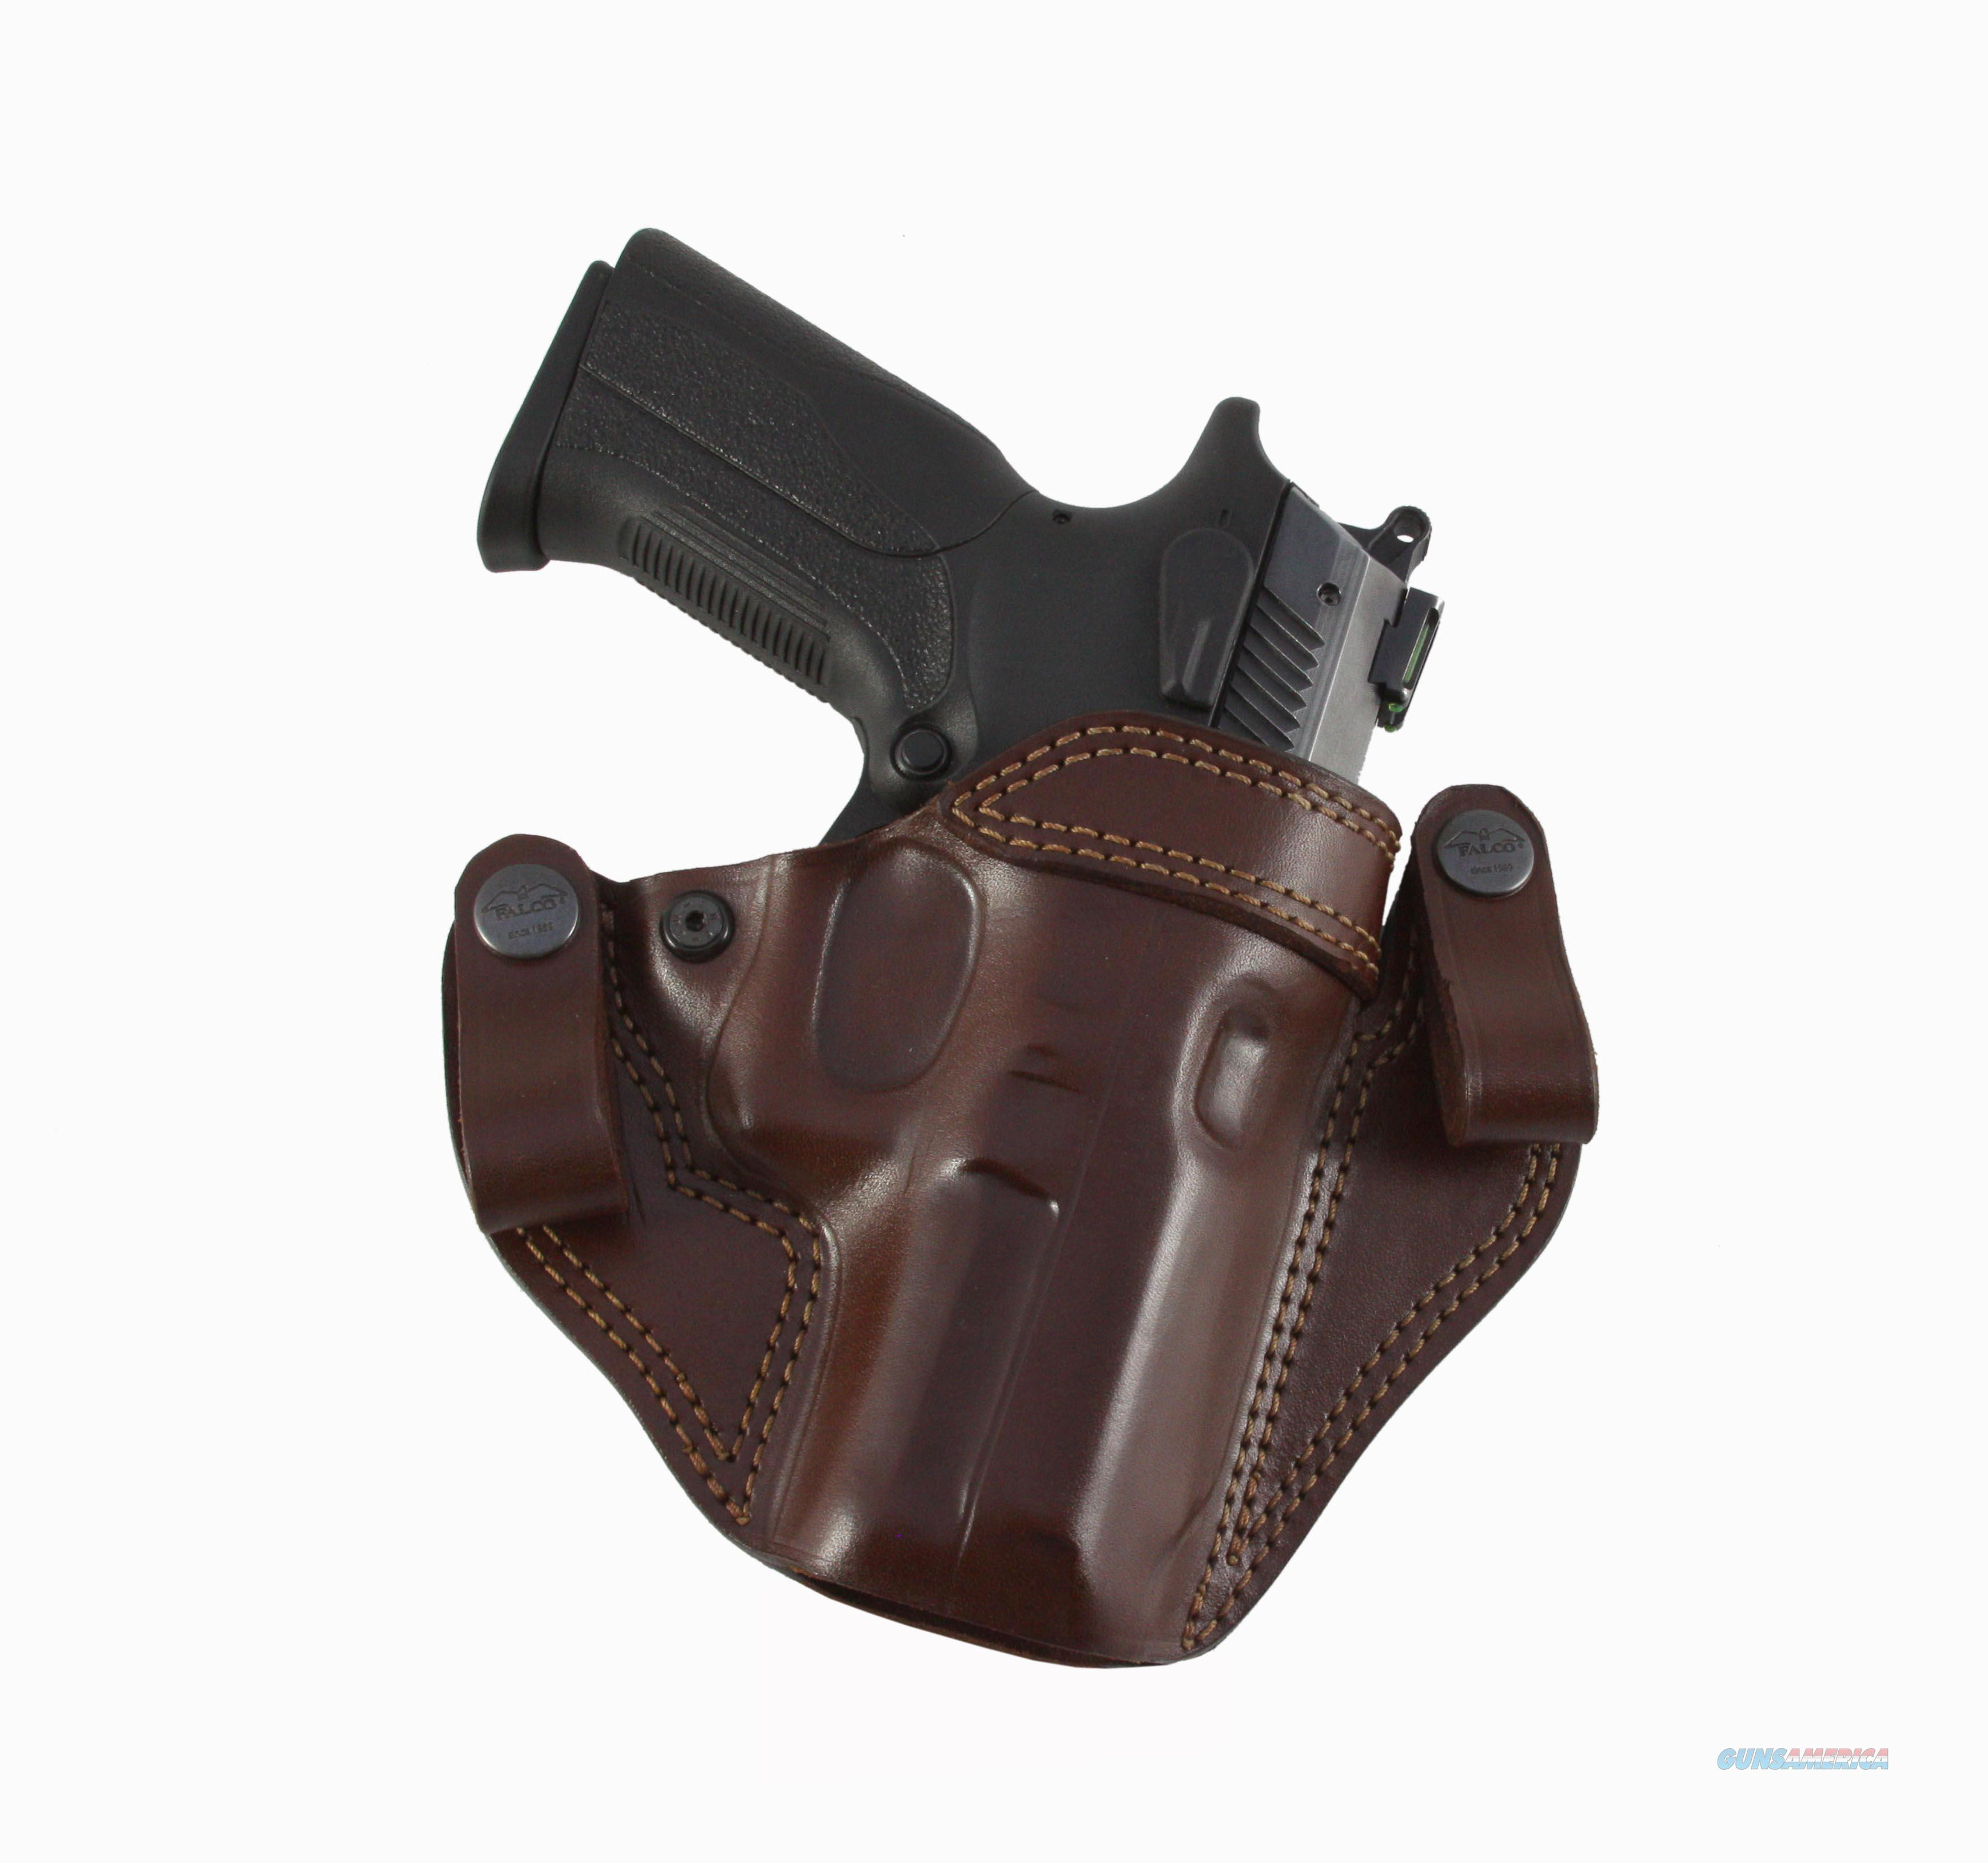 IWB Holster for Concealed Gun Carry  Sig Sauer P228/229  Non-Guns > Holsters and Gunleather > Concealed Carry